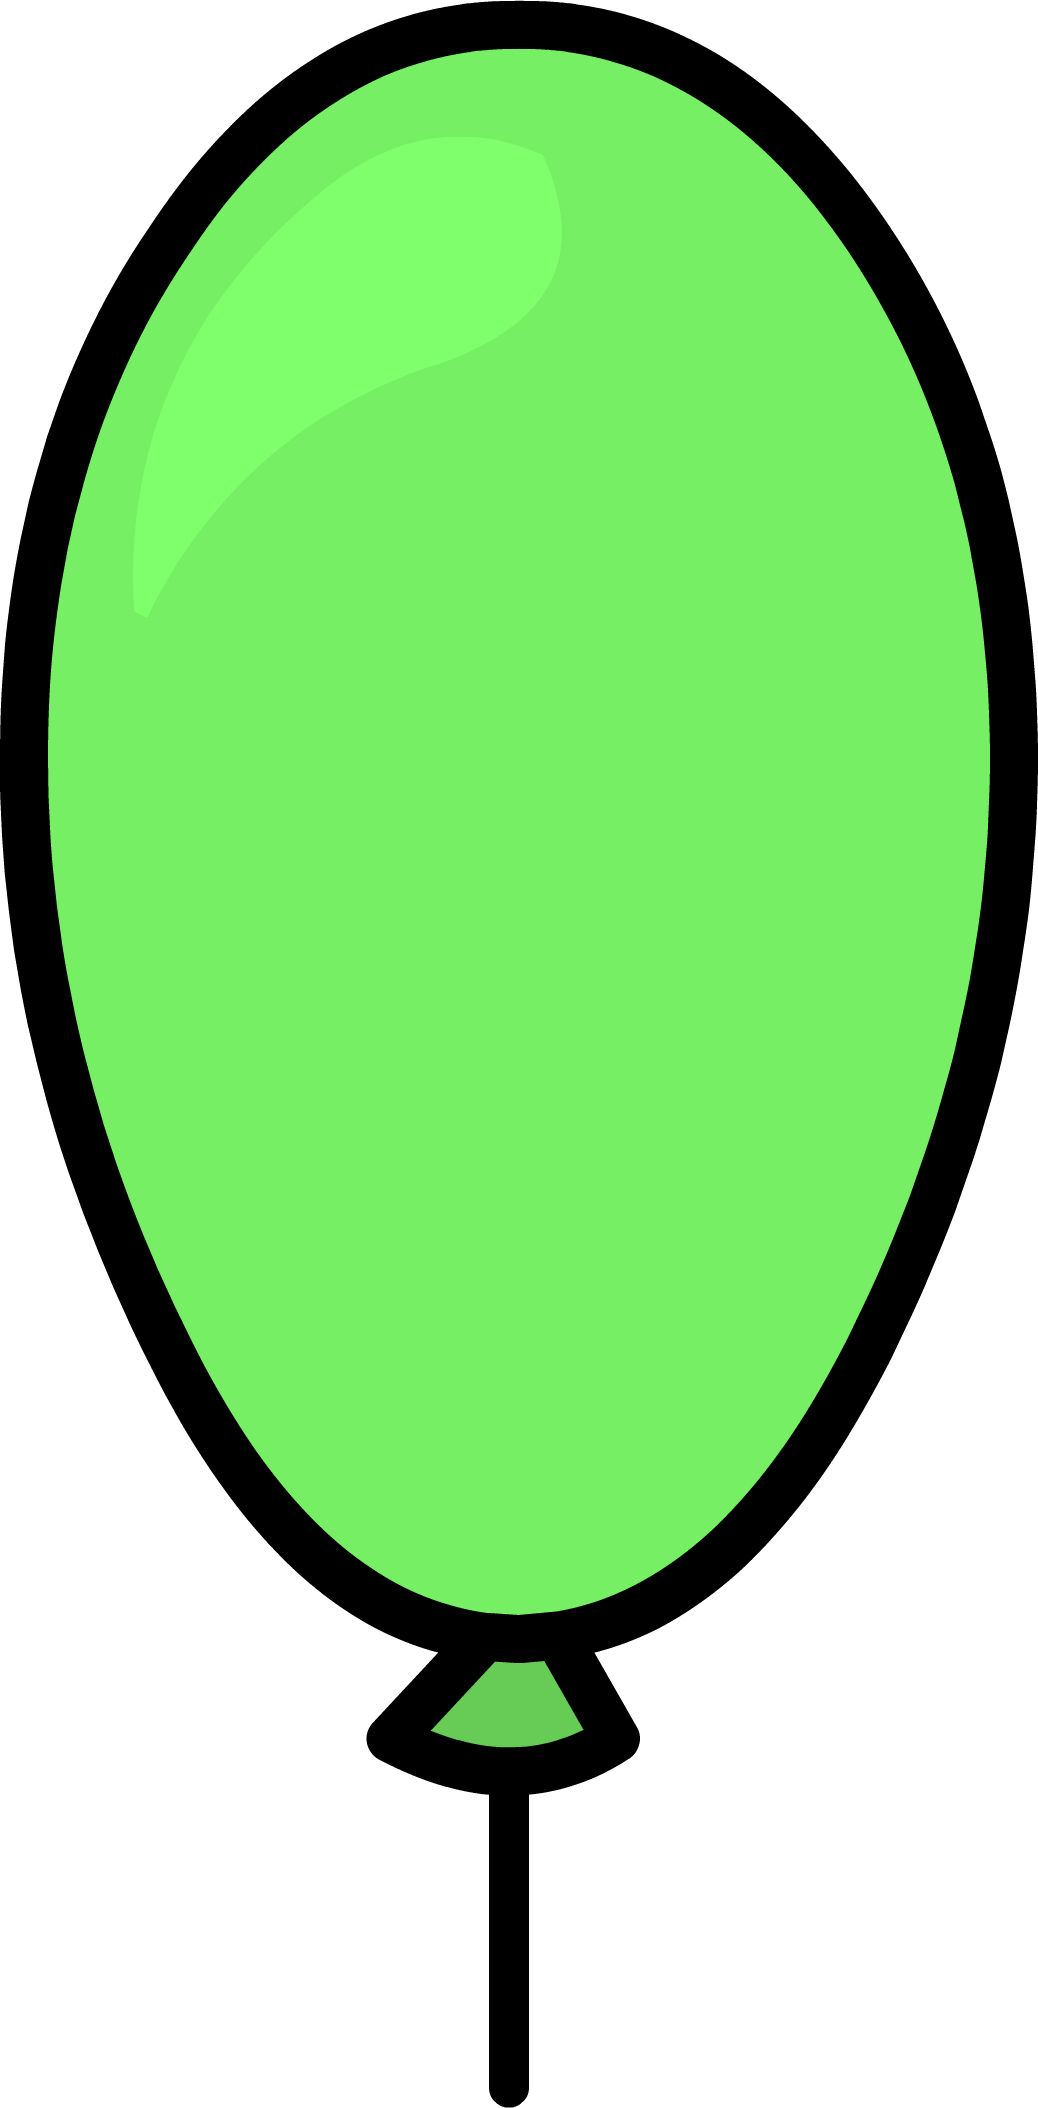 Green Balloon (furniture).PNG